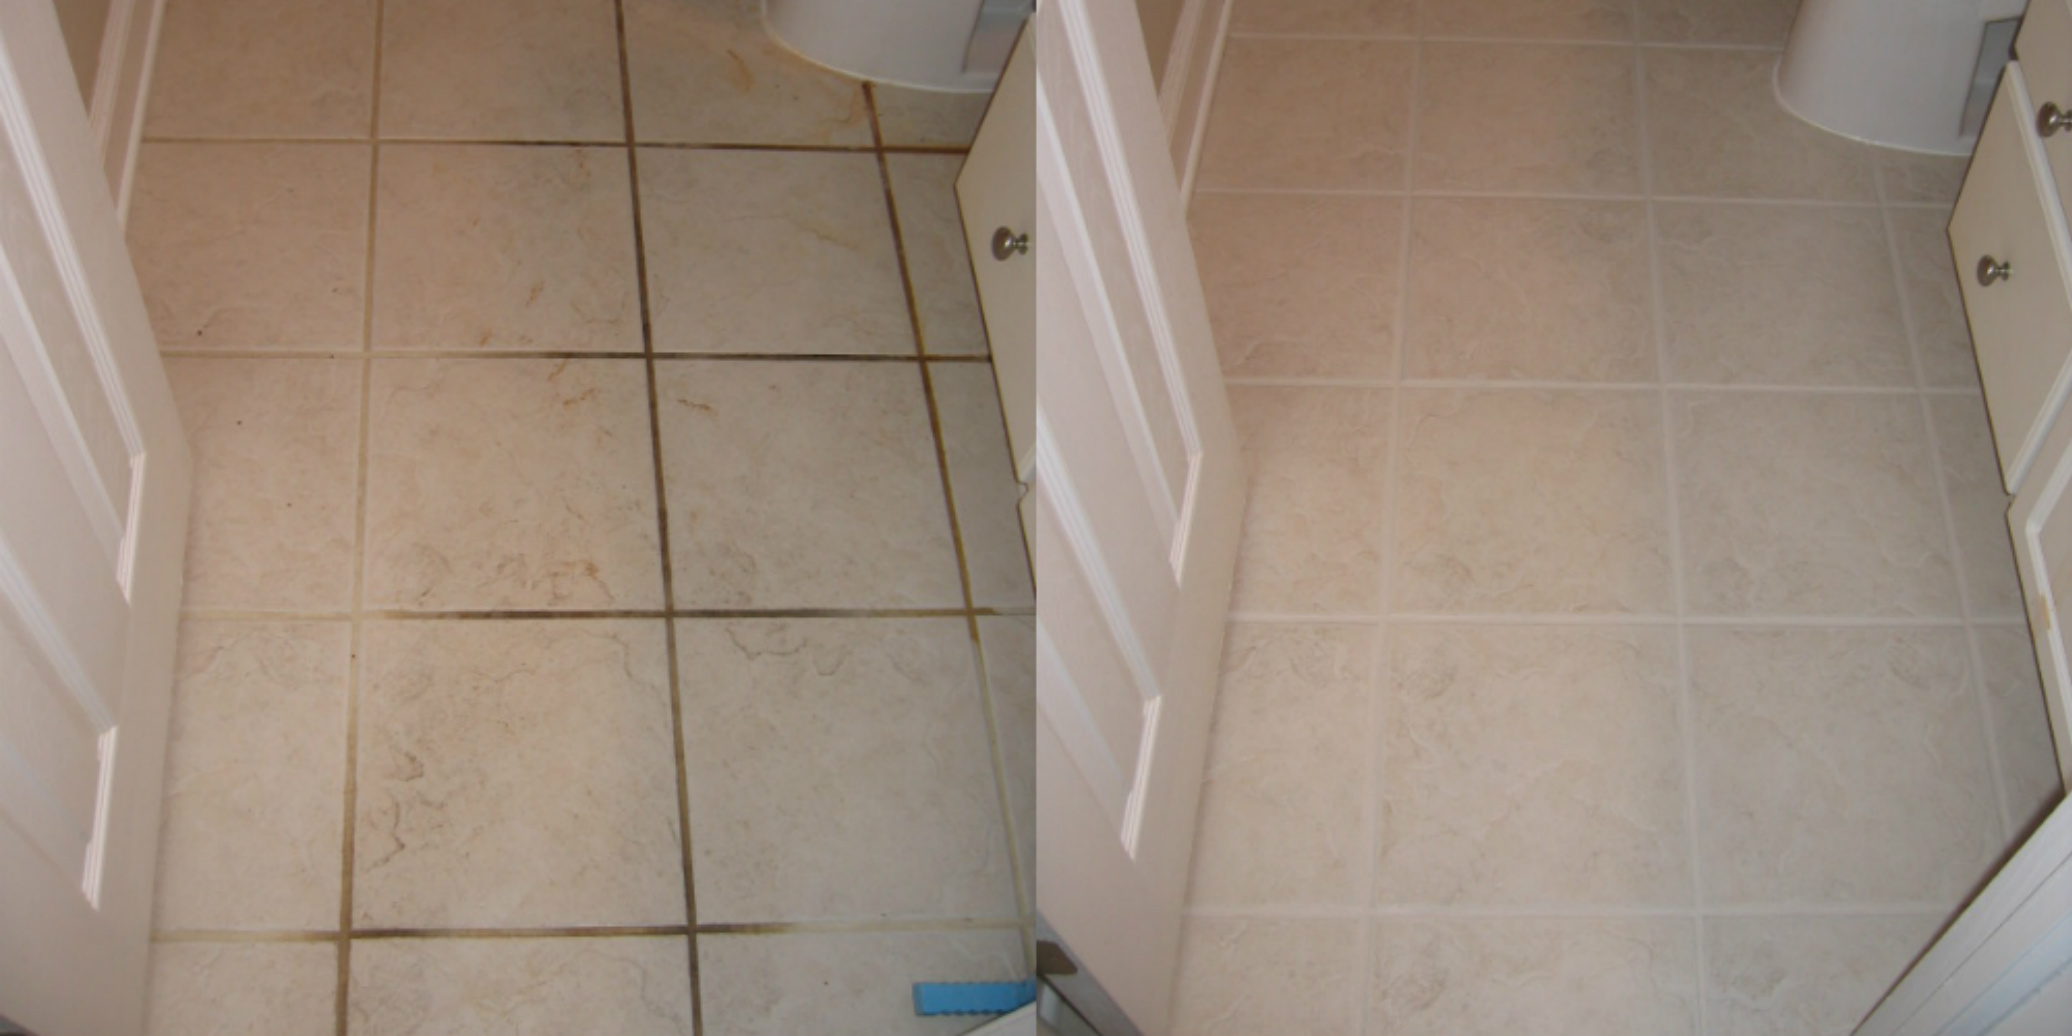 Tile and Grout Cleaning Services Maryknoll